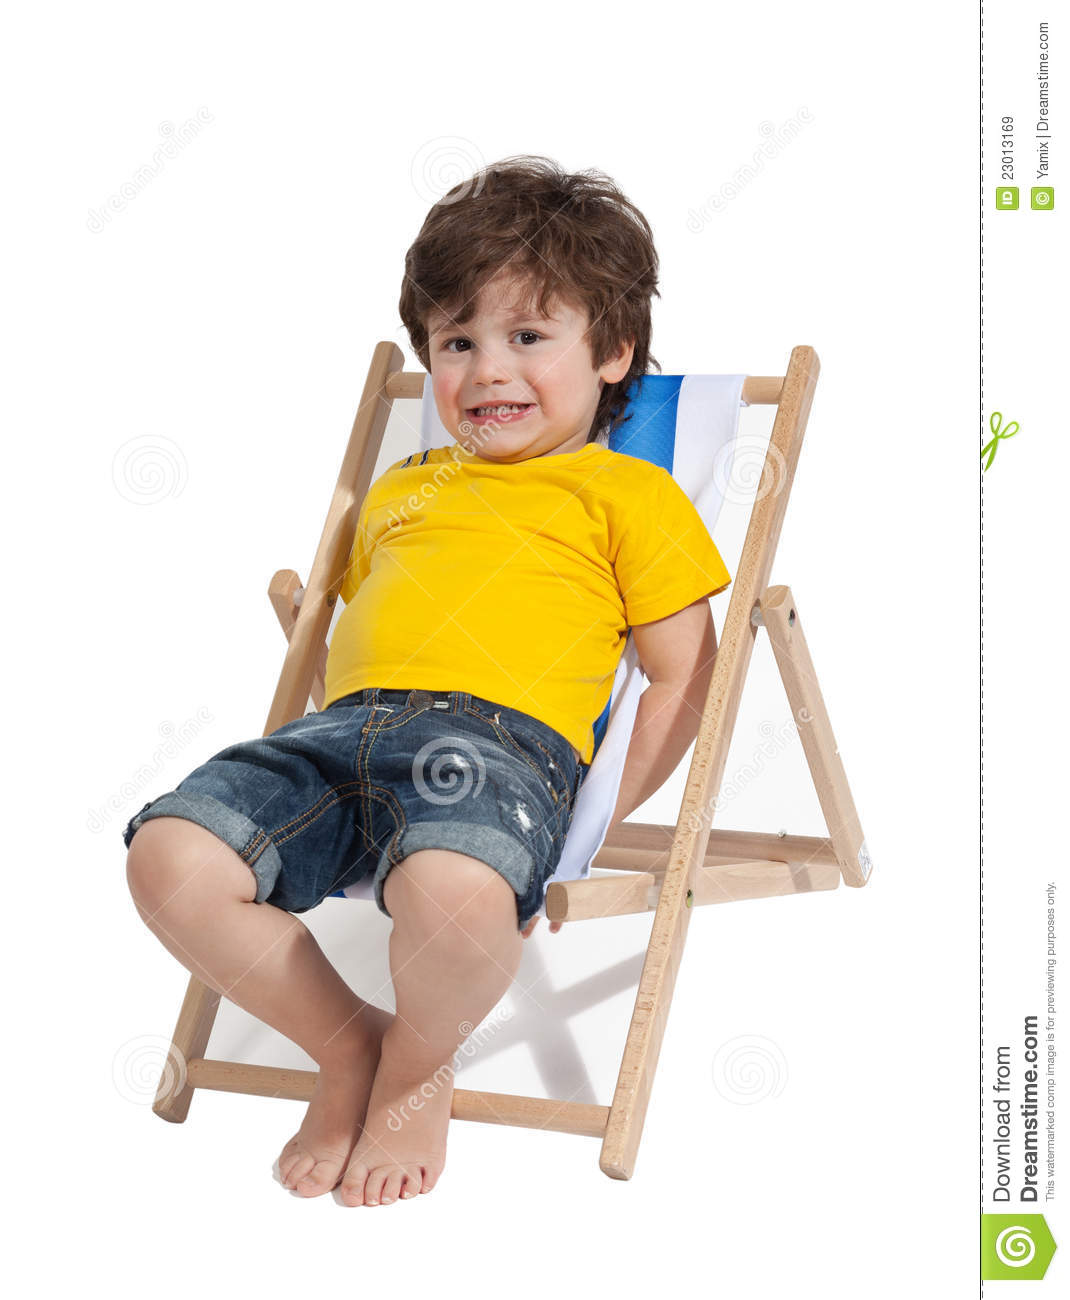 Adorable toddler boy royalty free stock images image for Toddler sitting chair